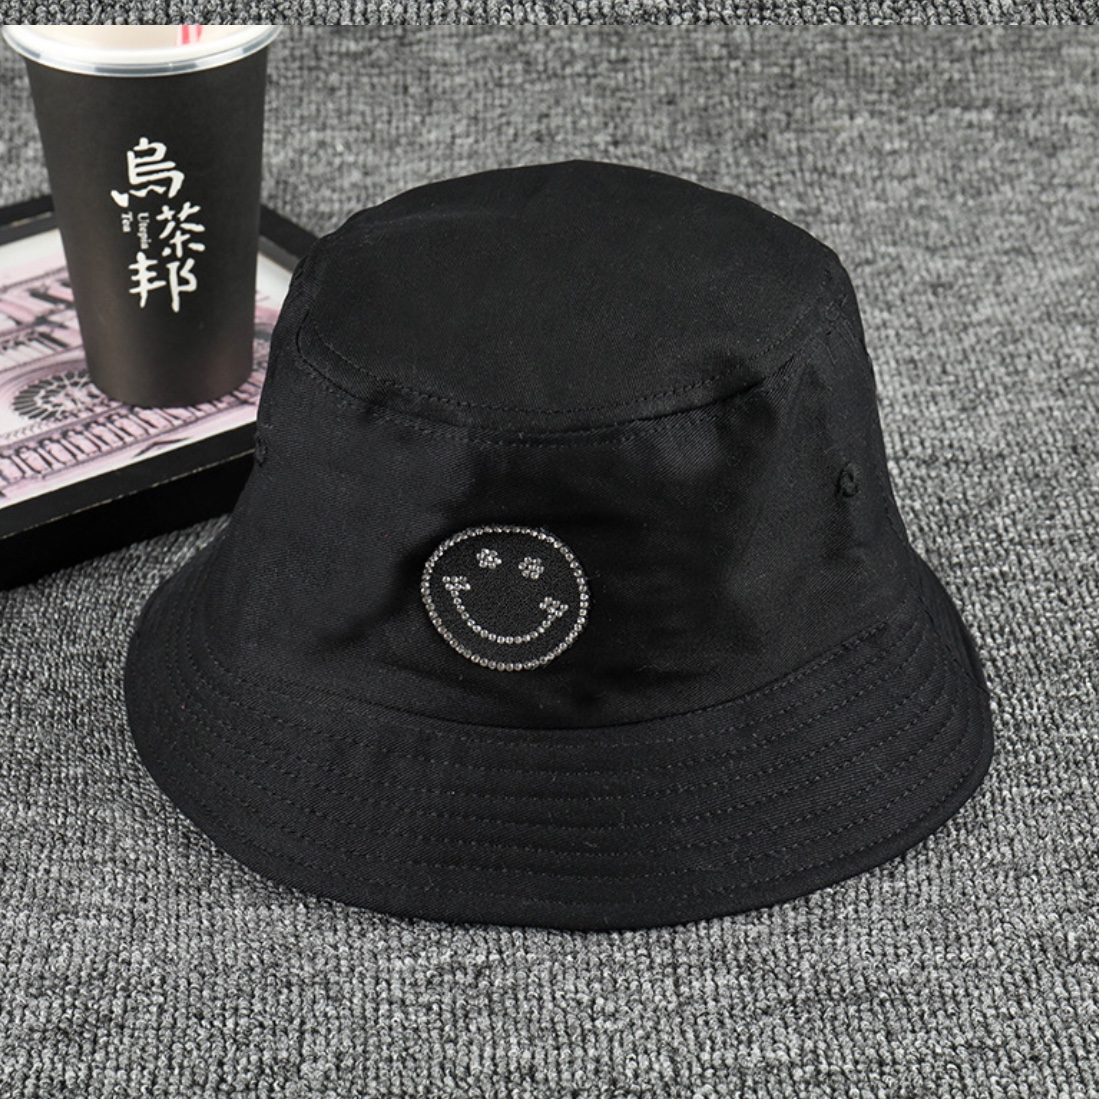 Cute Black Bucket Hat With Smily Face Unisex Depop